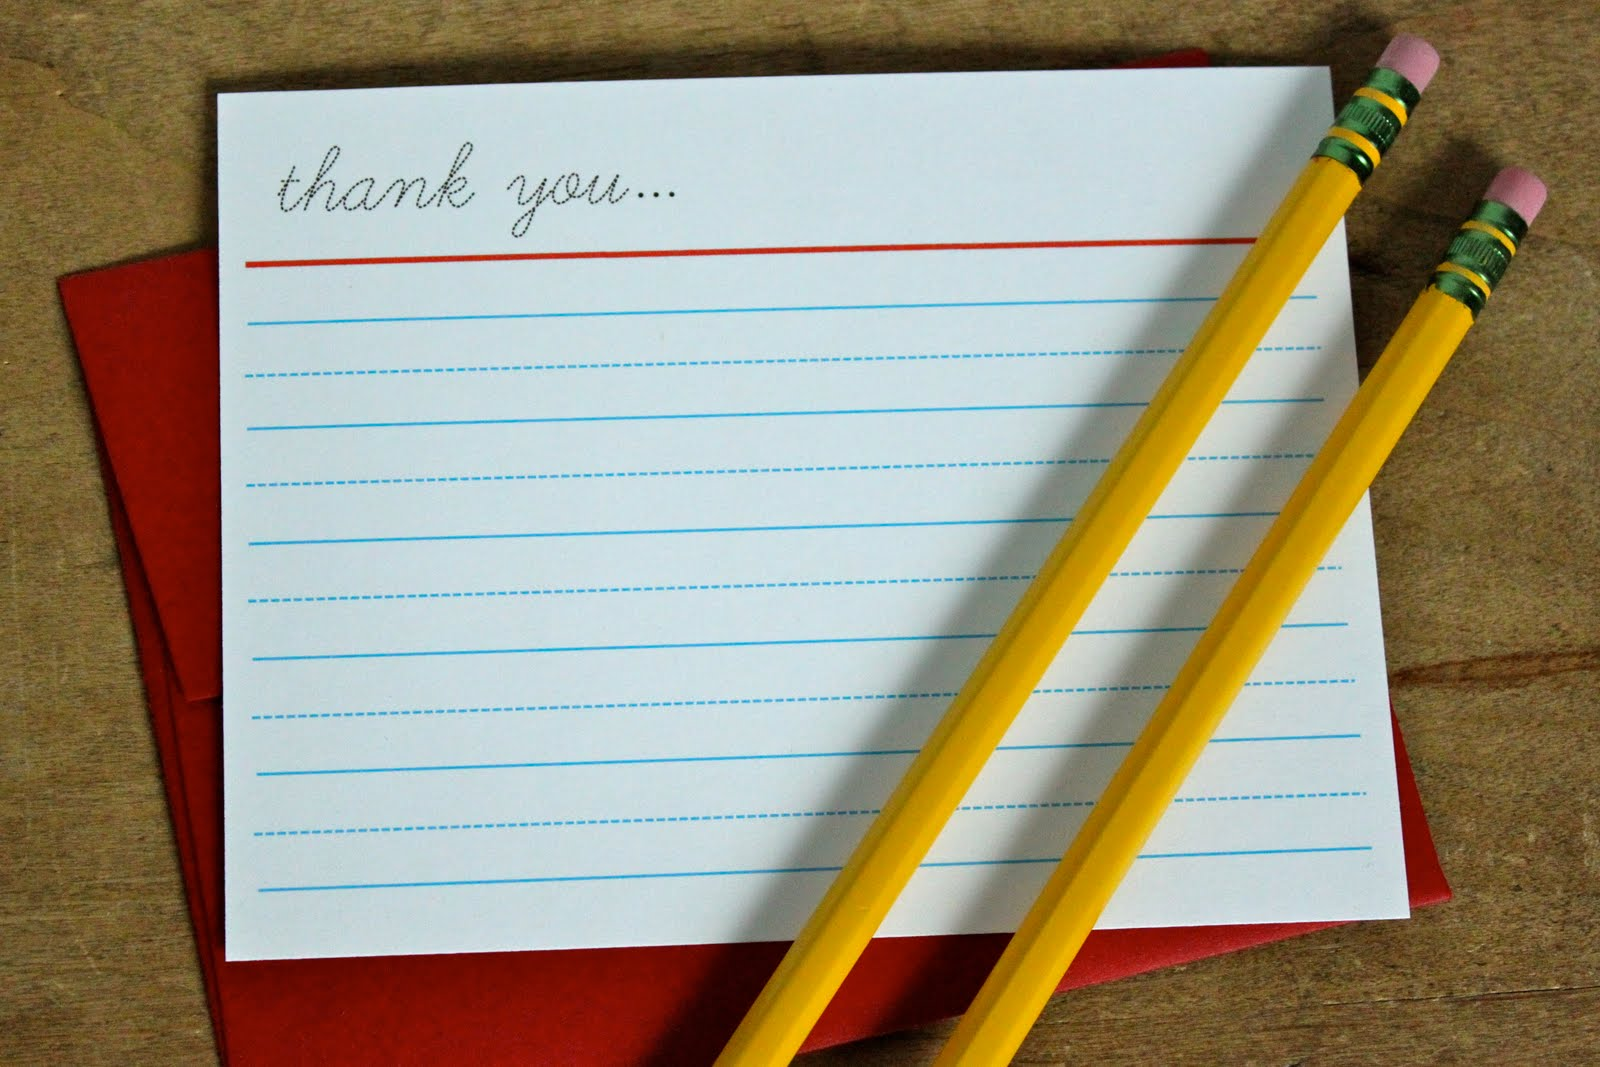 Thank You Card Download.